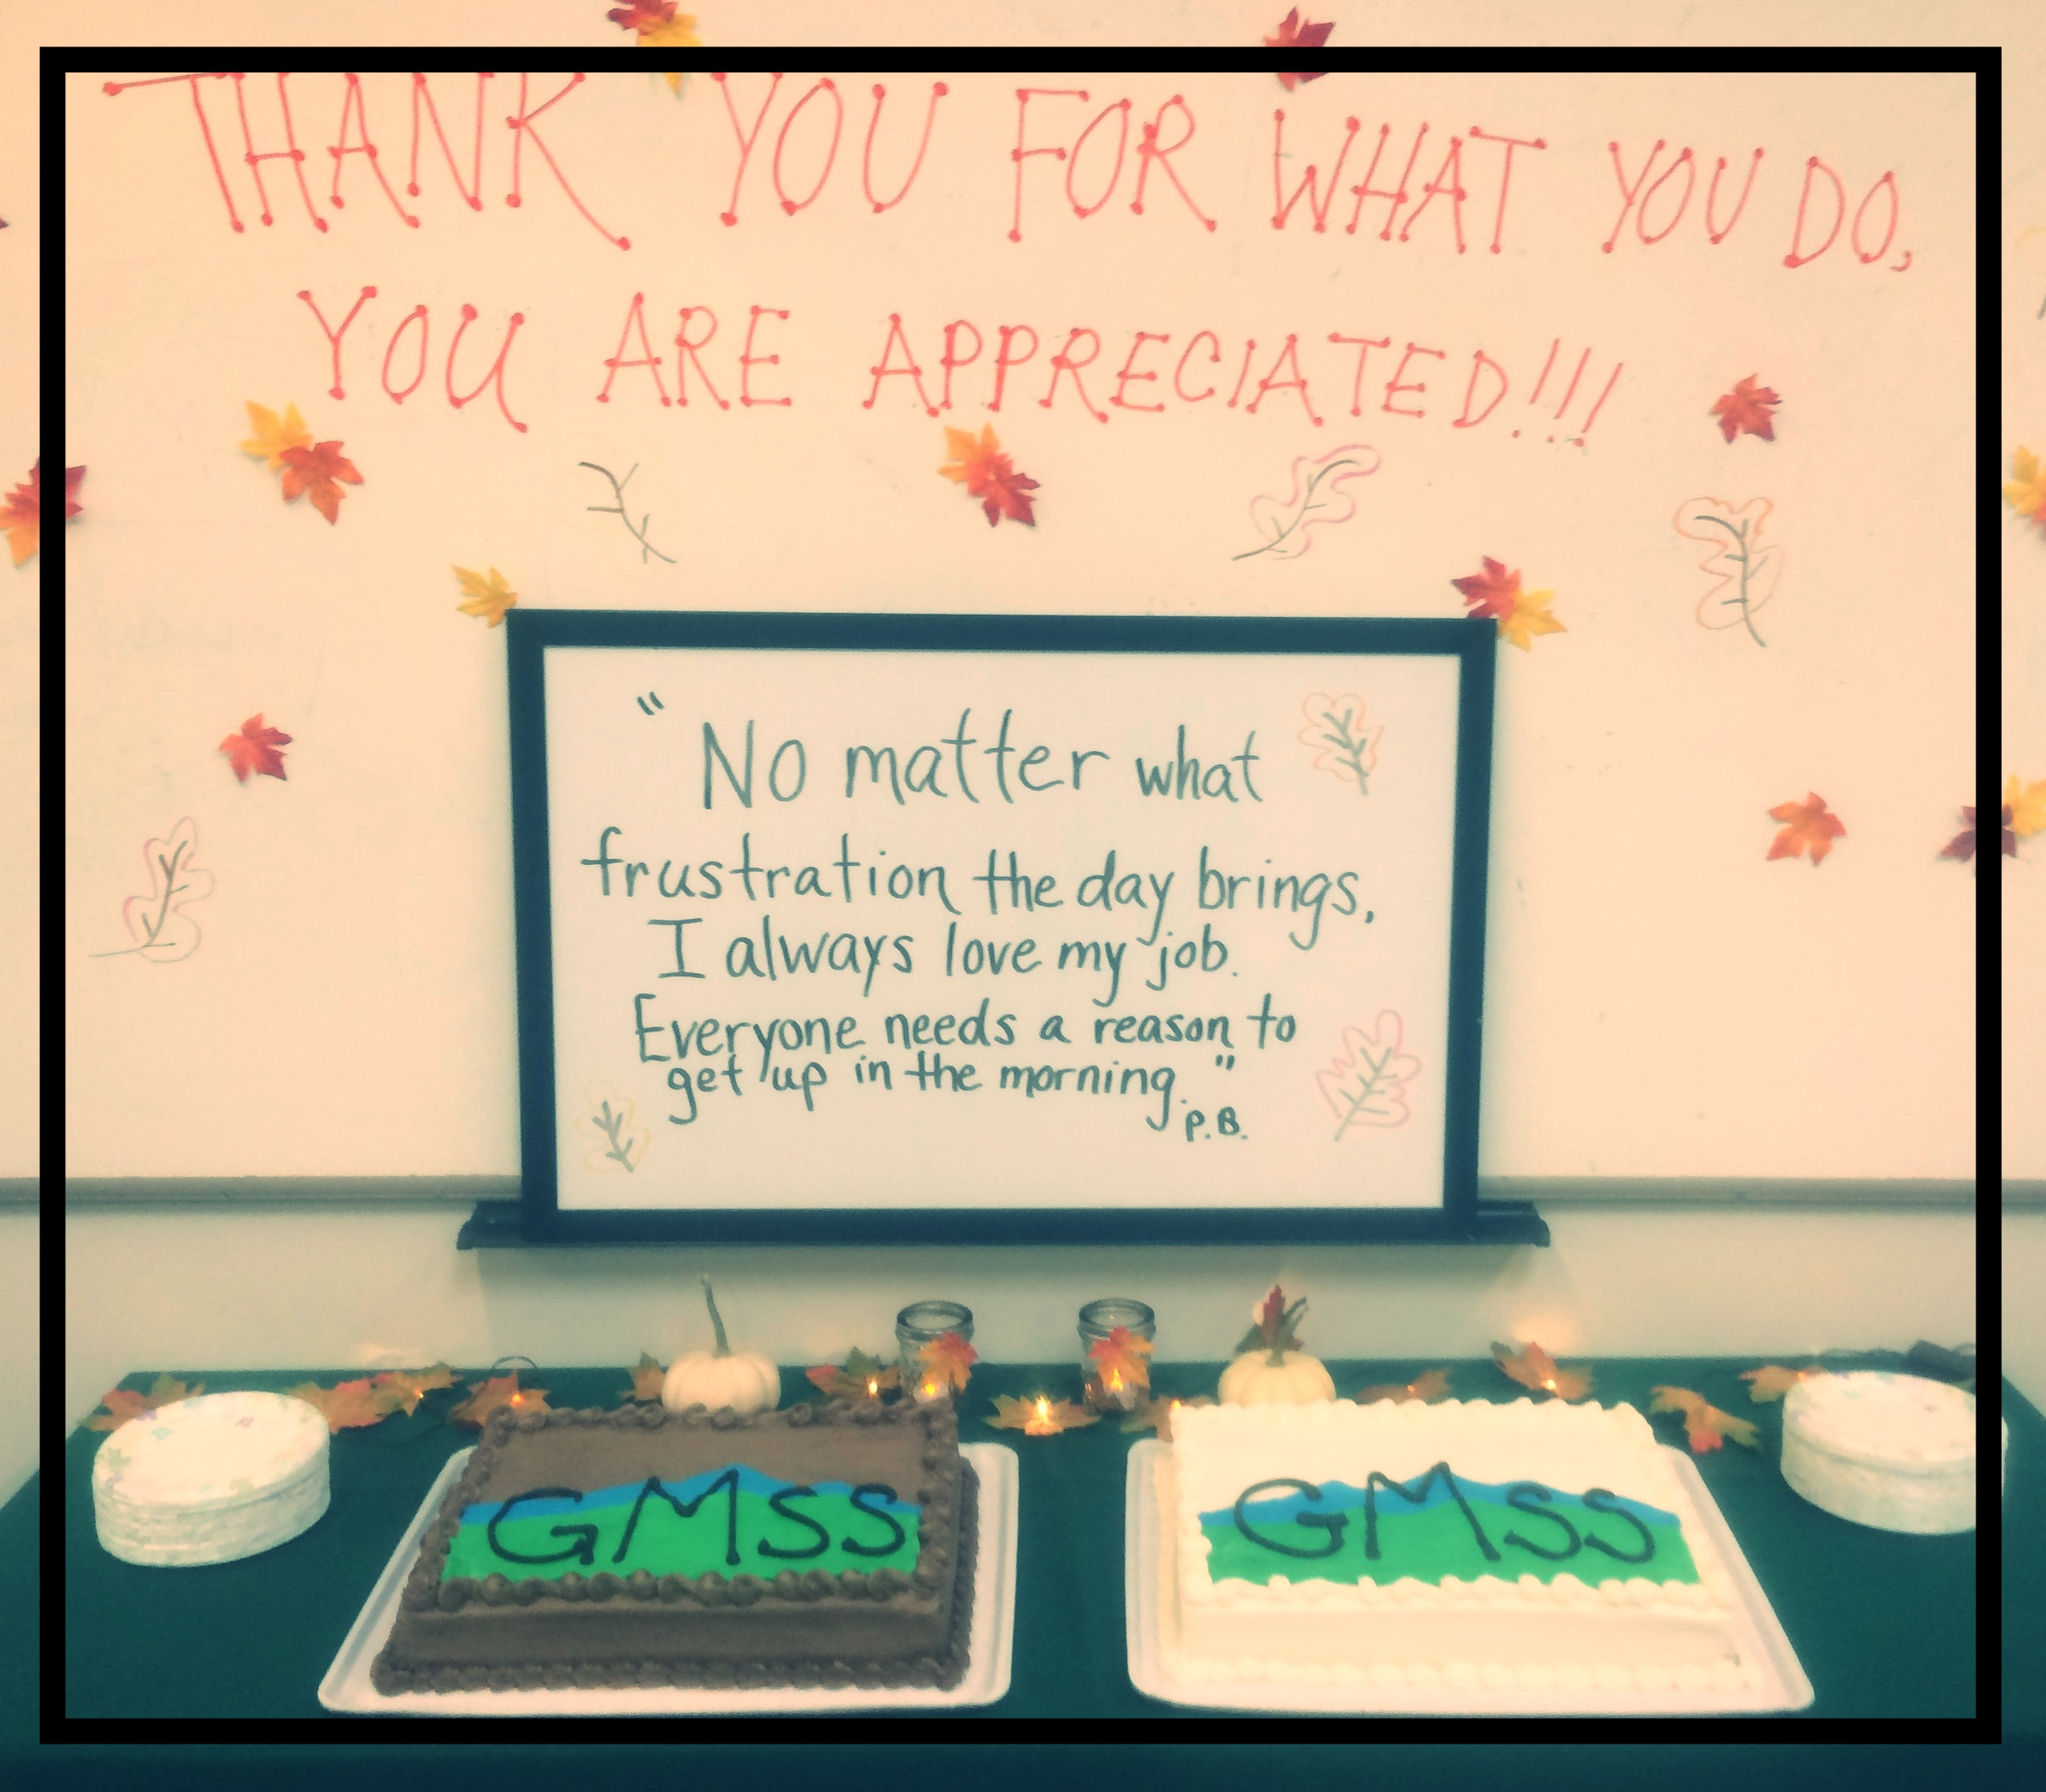 """Thank You For What You Do. You Are Appreciated!"""